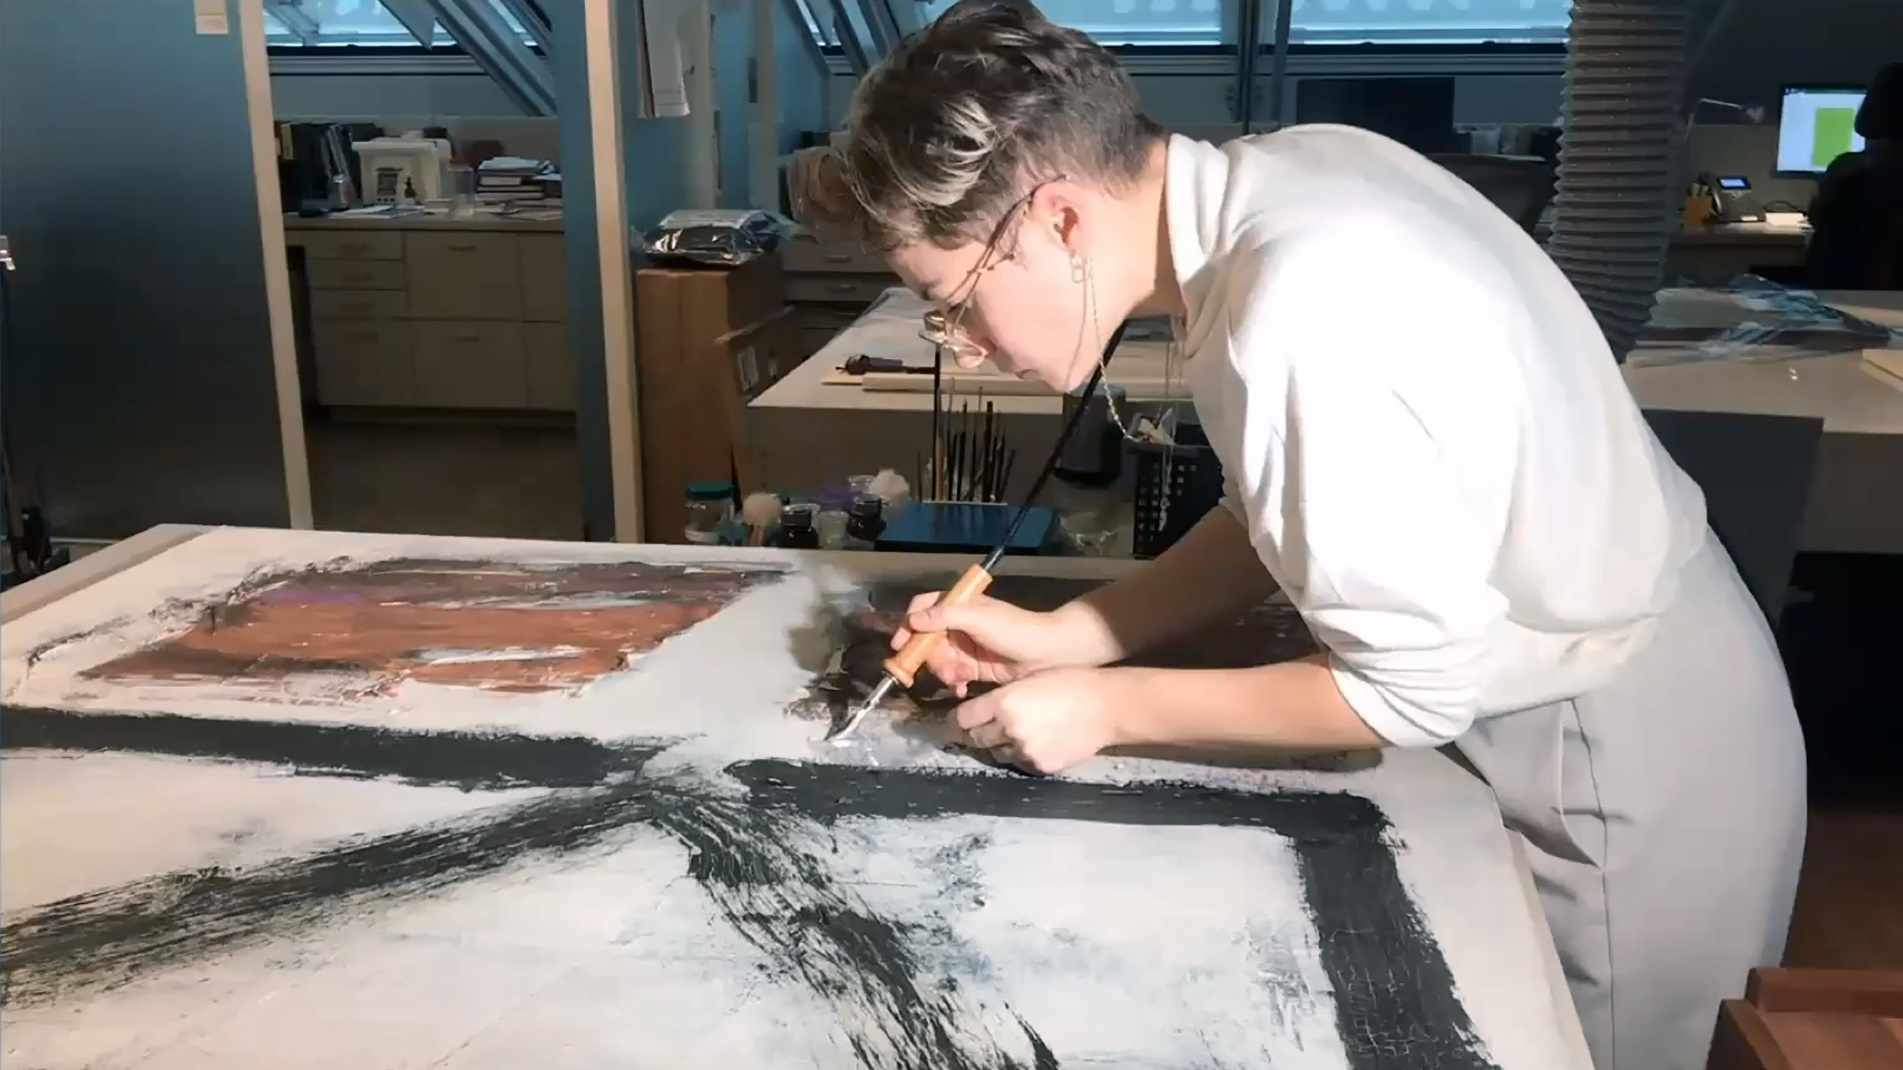 A woman wearing a white shirt and gray pants stands over a large-scale abstract painting in a lab. She applies a white material to the painting using a long slender tool.